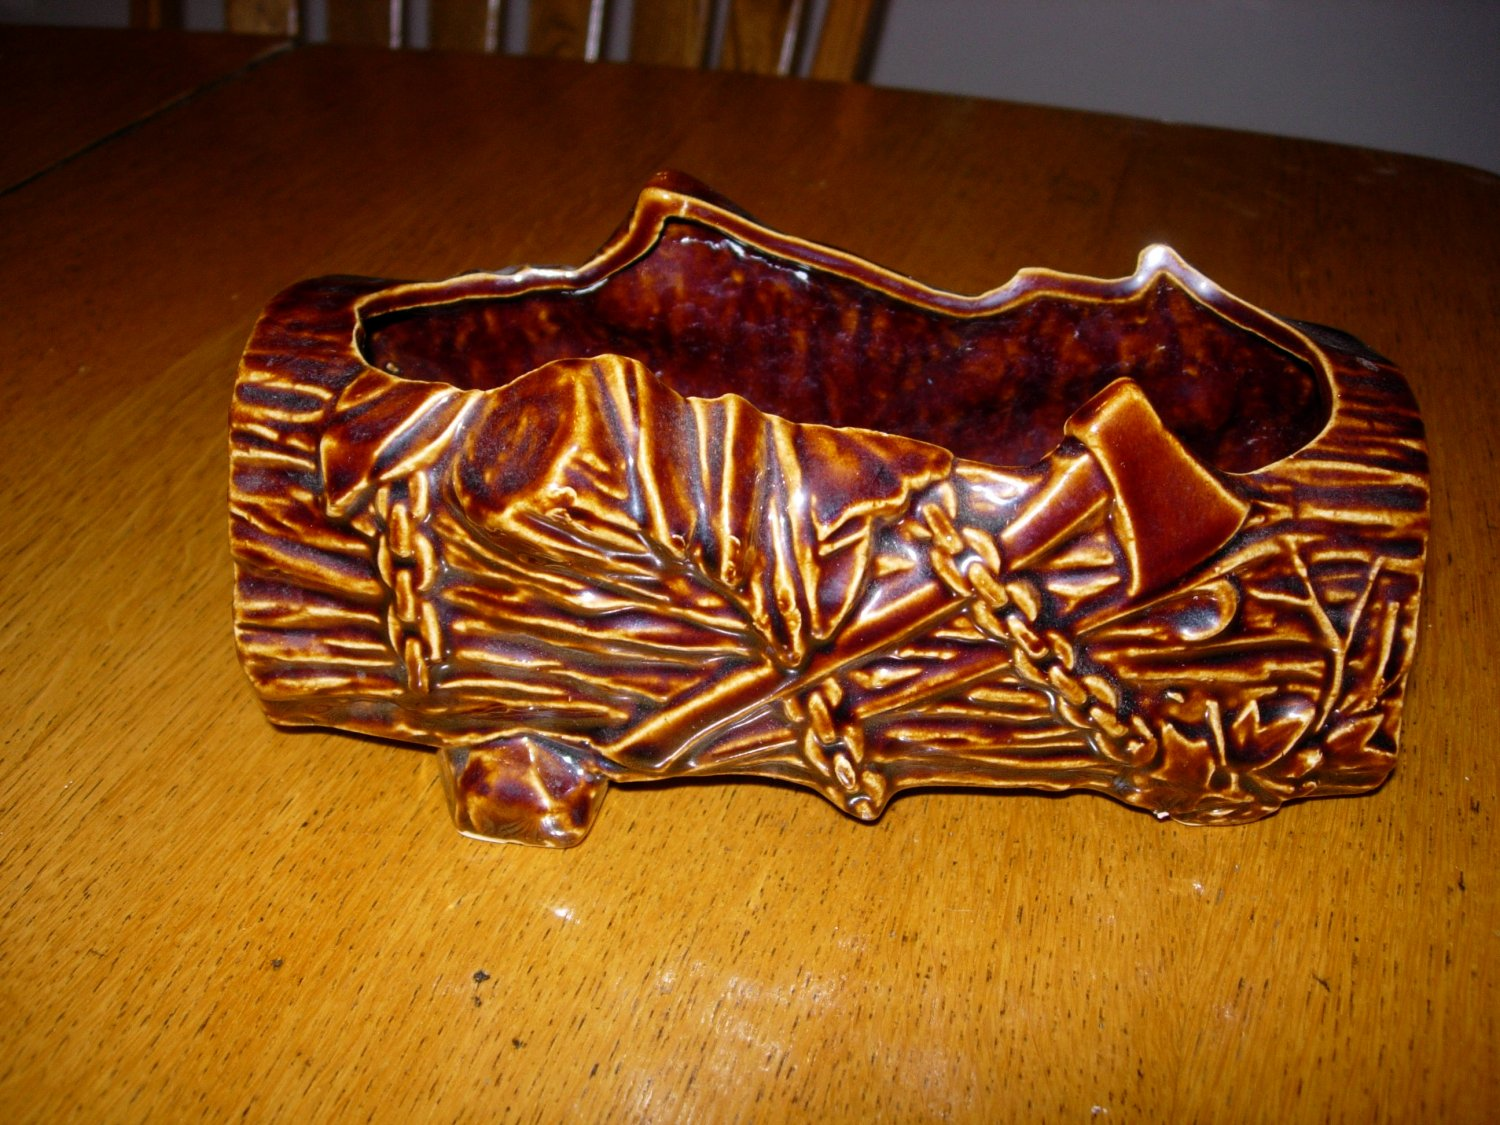 Vintage McCoy USA Tree Stump Log Planter Brown Glaze with Chains Cross Cut Saw Ax Axe Hatchet